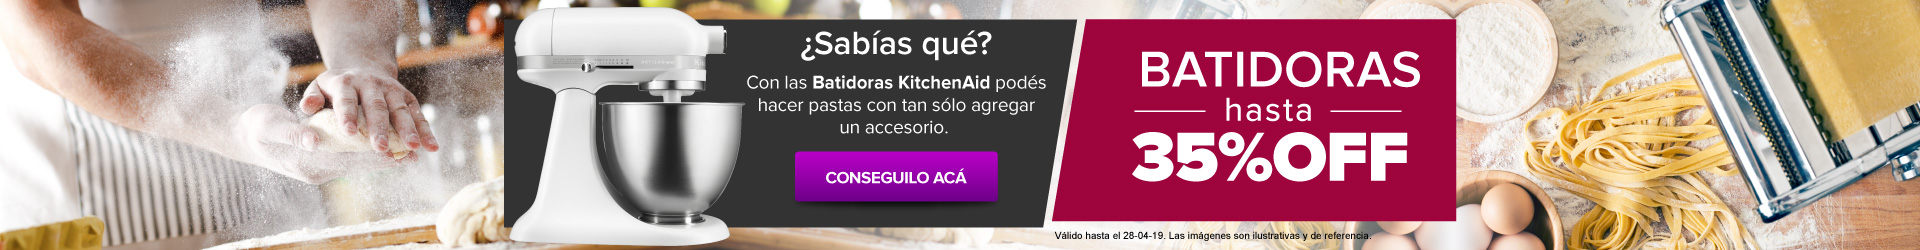 KitchenaAid